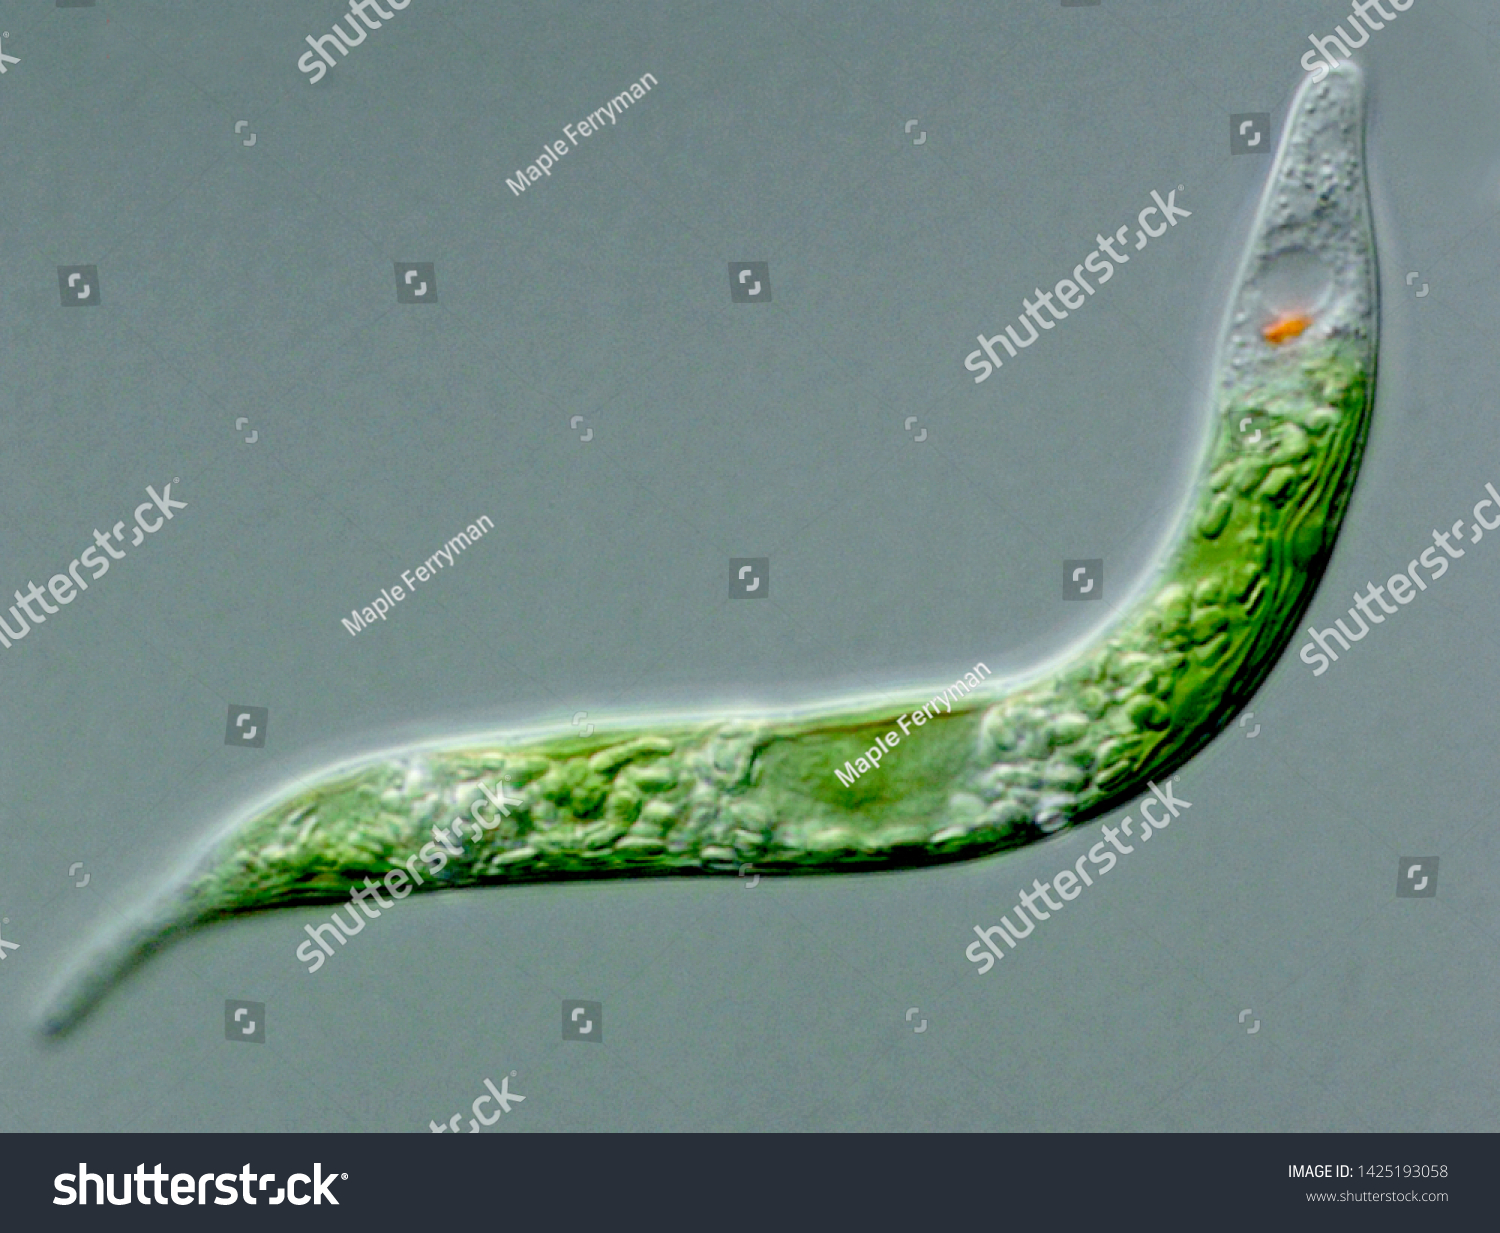 Light micrograph of the protist Euglena mutabilis showing squirming shape #1425193058